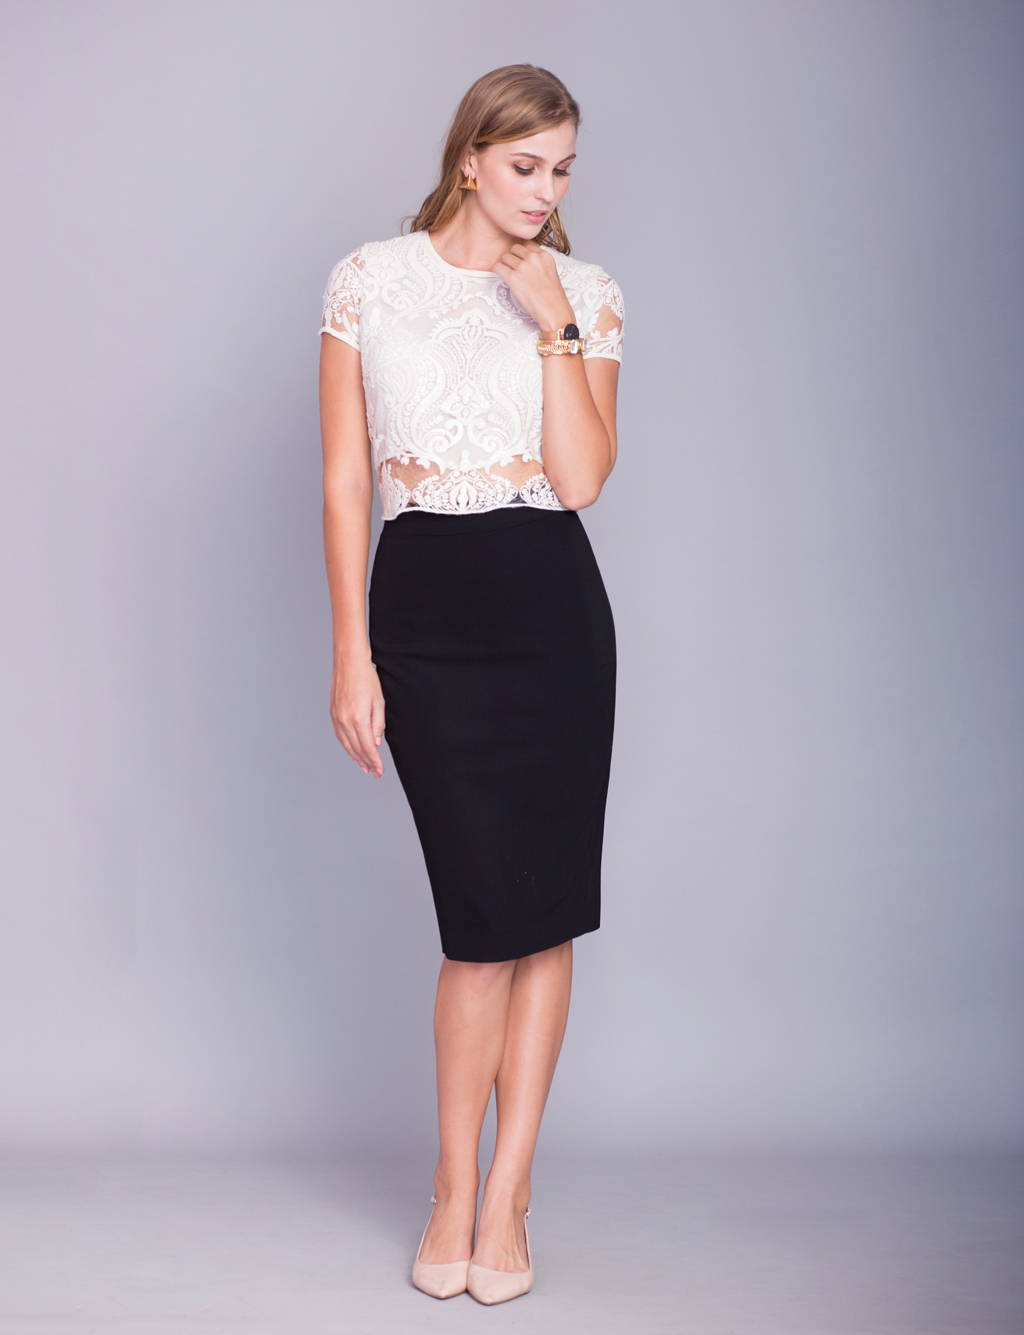 Rita Phil custom pencil skirts | Algorithm 2__Lillian